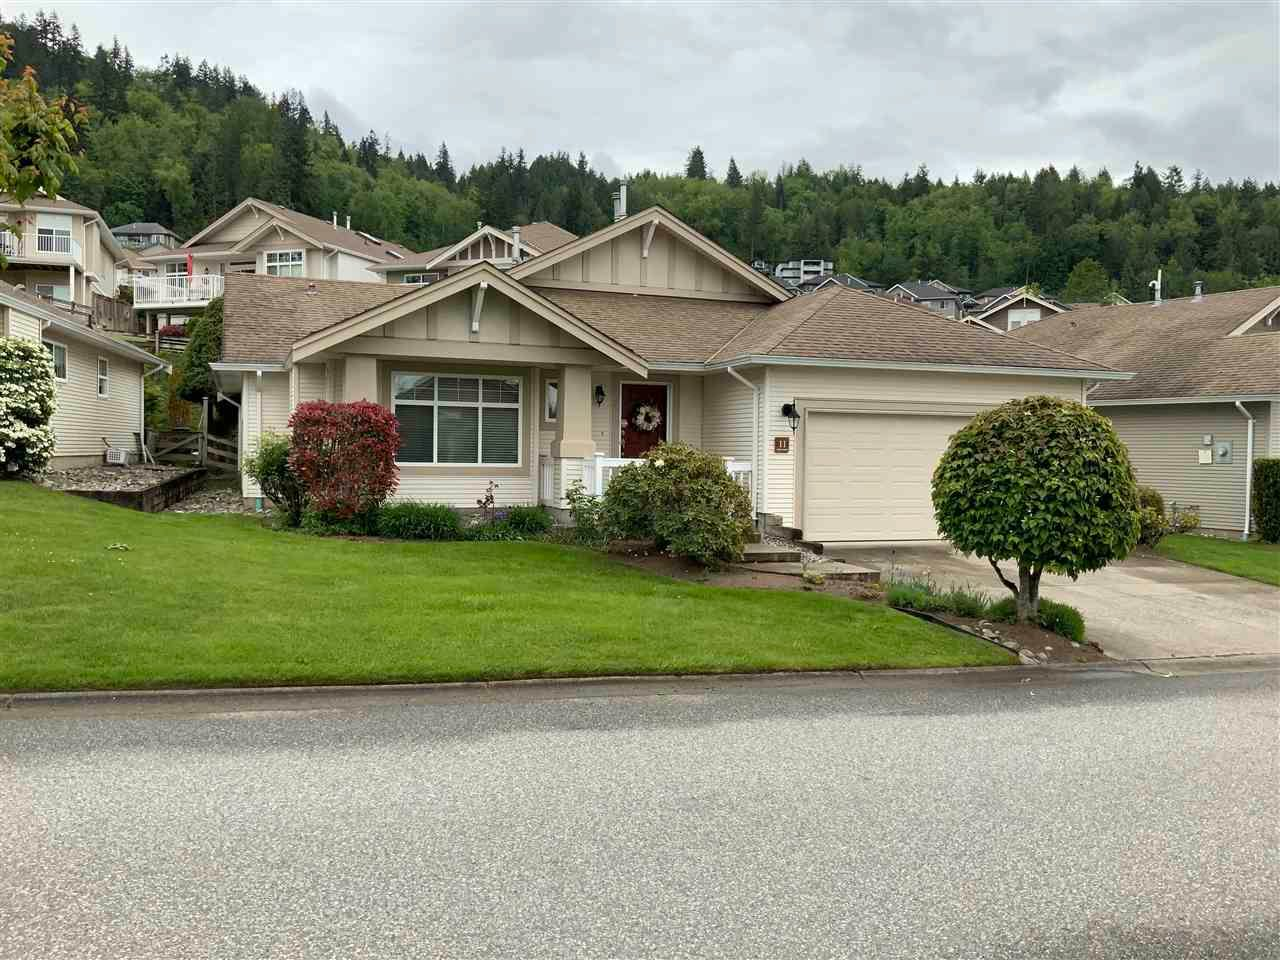 """Main Photo: 11 5700 JINKERSON Road in Chilliwack: Promontory House for sale in """"Thom Creek Ranch"""" (Sardis)  : MLS®# R2579508"""